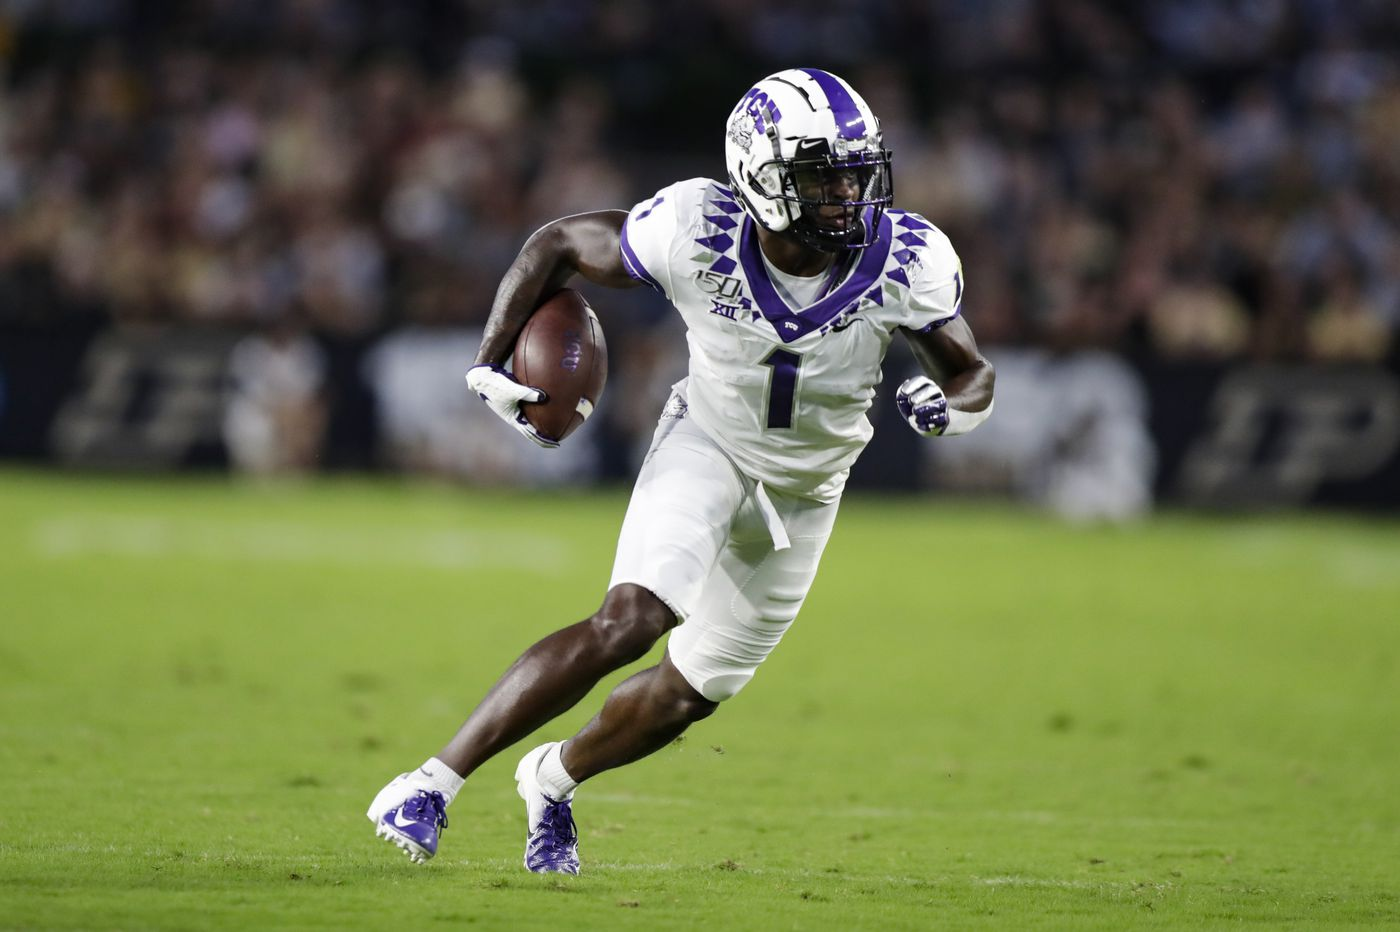 Sports chatter: Jalen Reagor's mom responds to critics in Twitter post